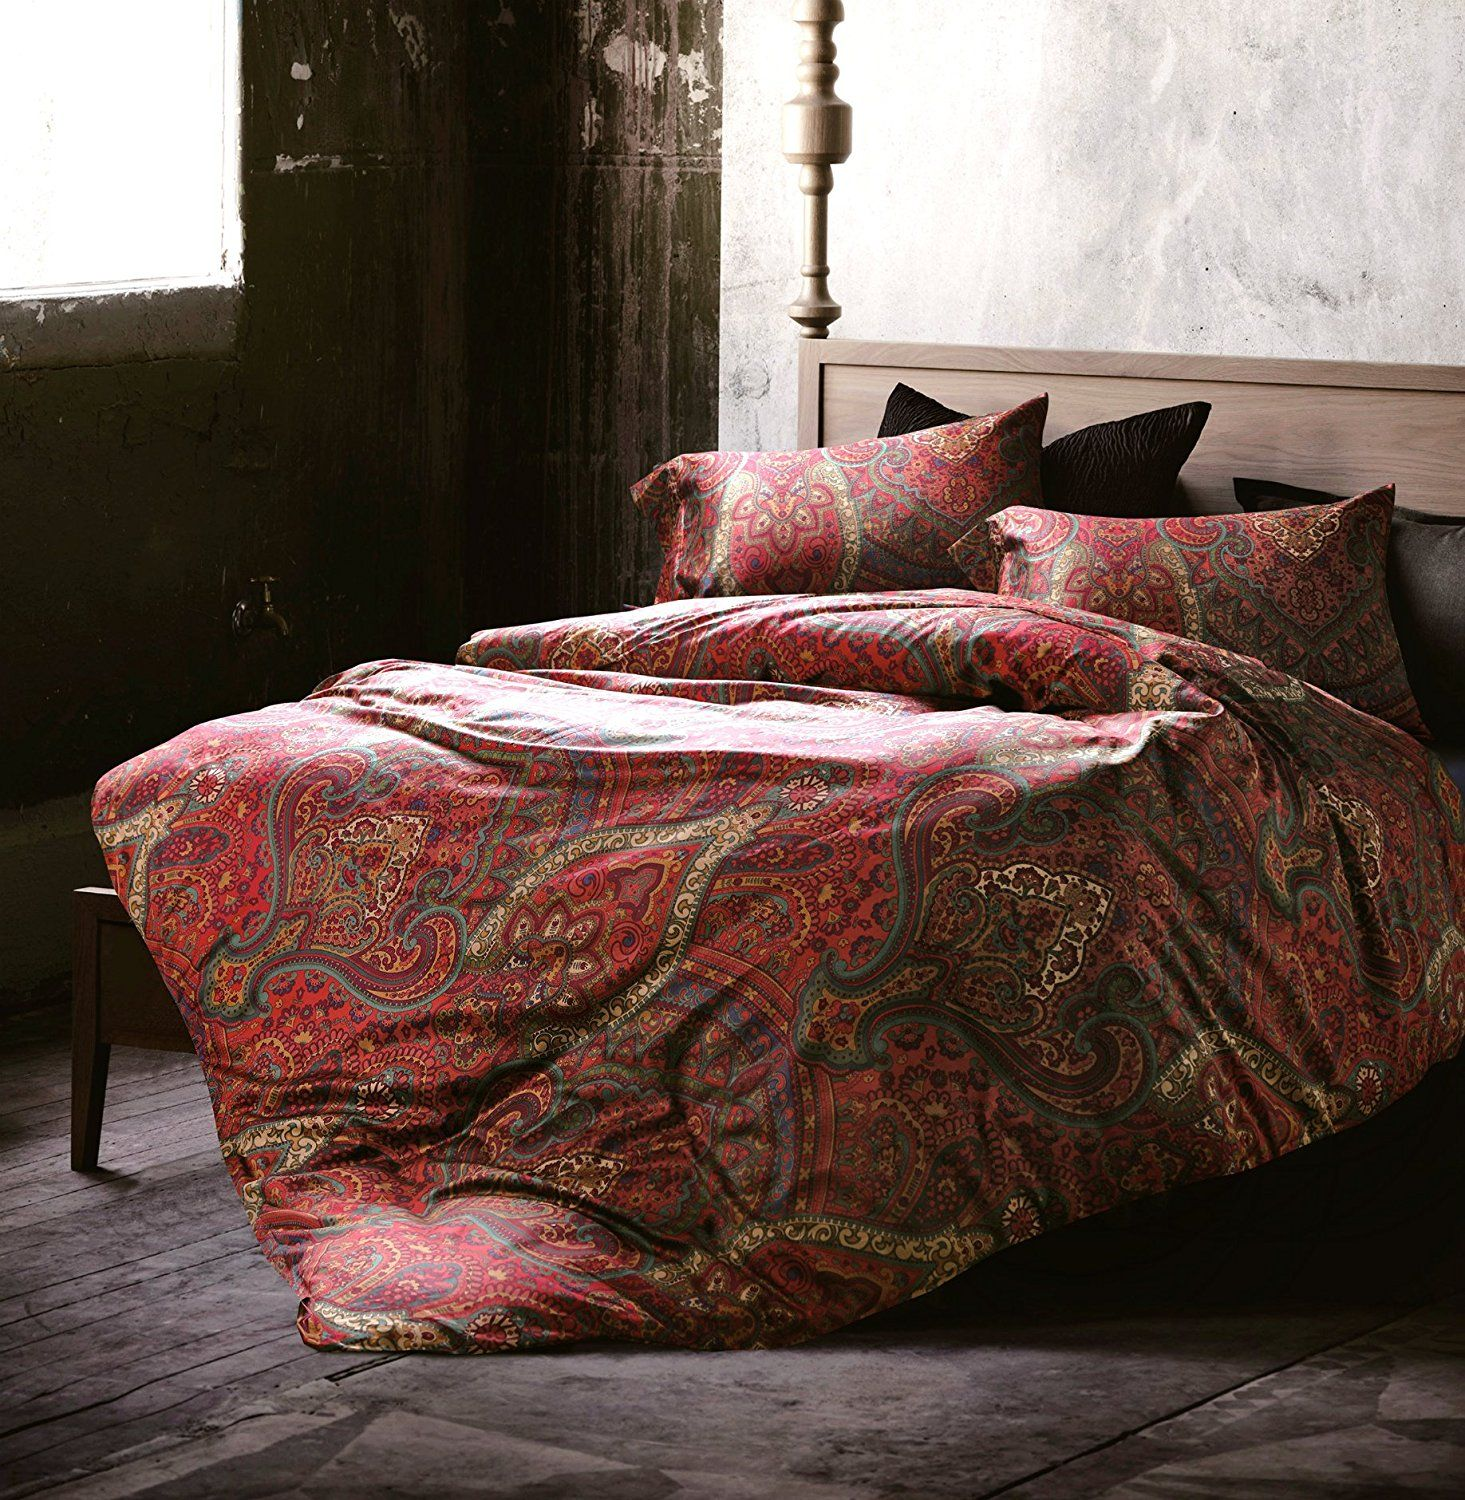 Burgundy Bedding Sets – Best Fall Bedding Collections Boho Paisley